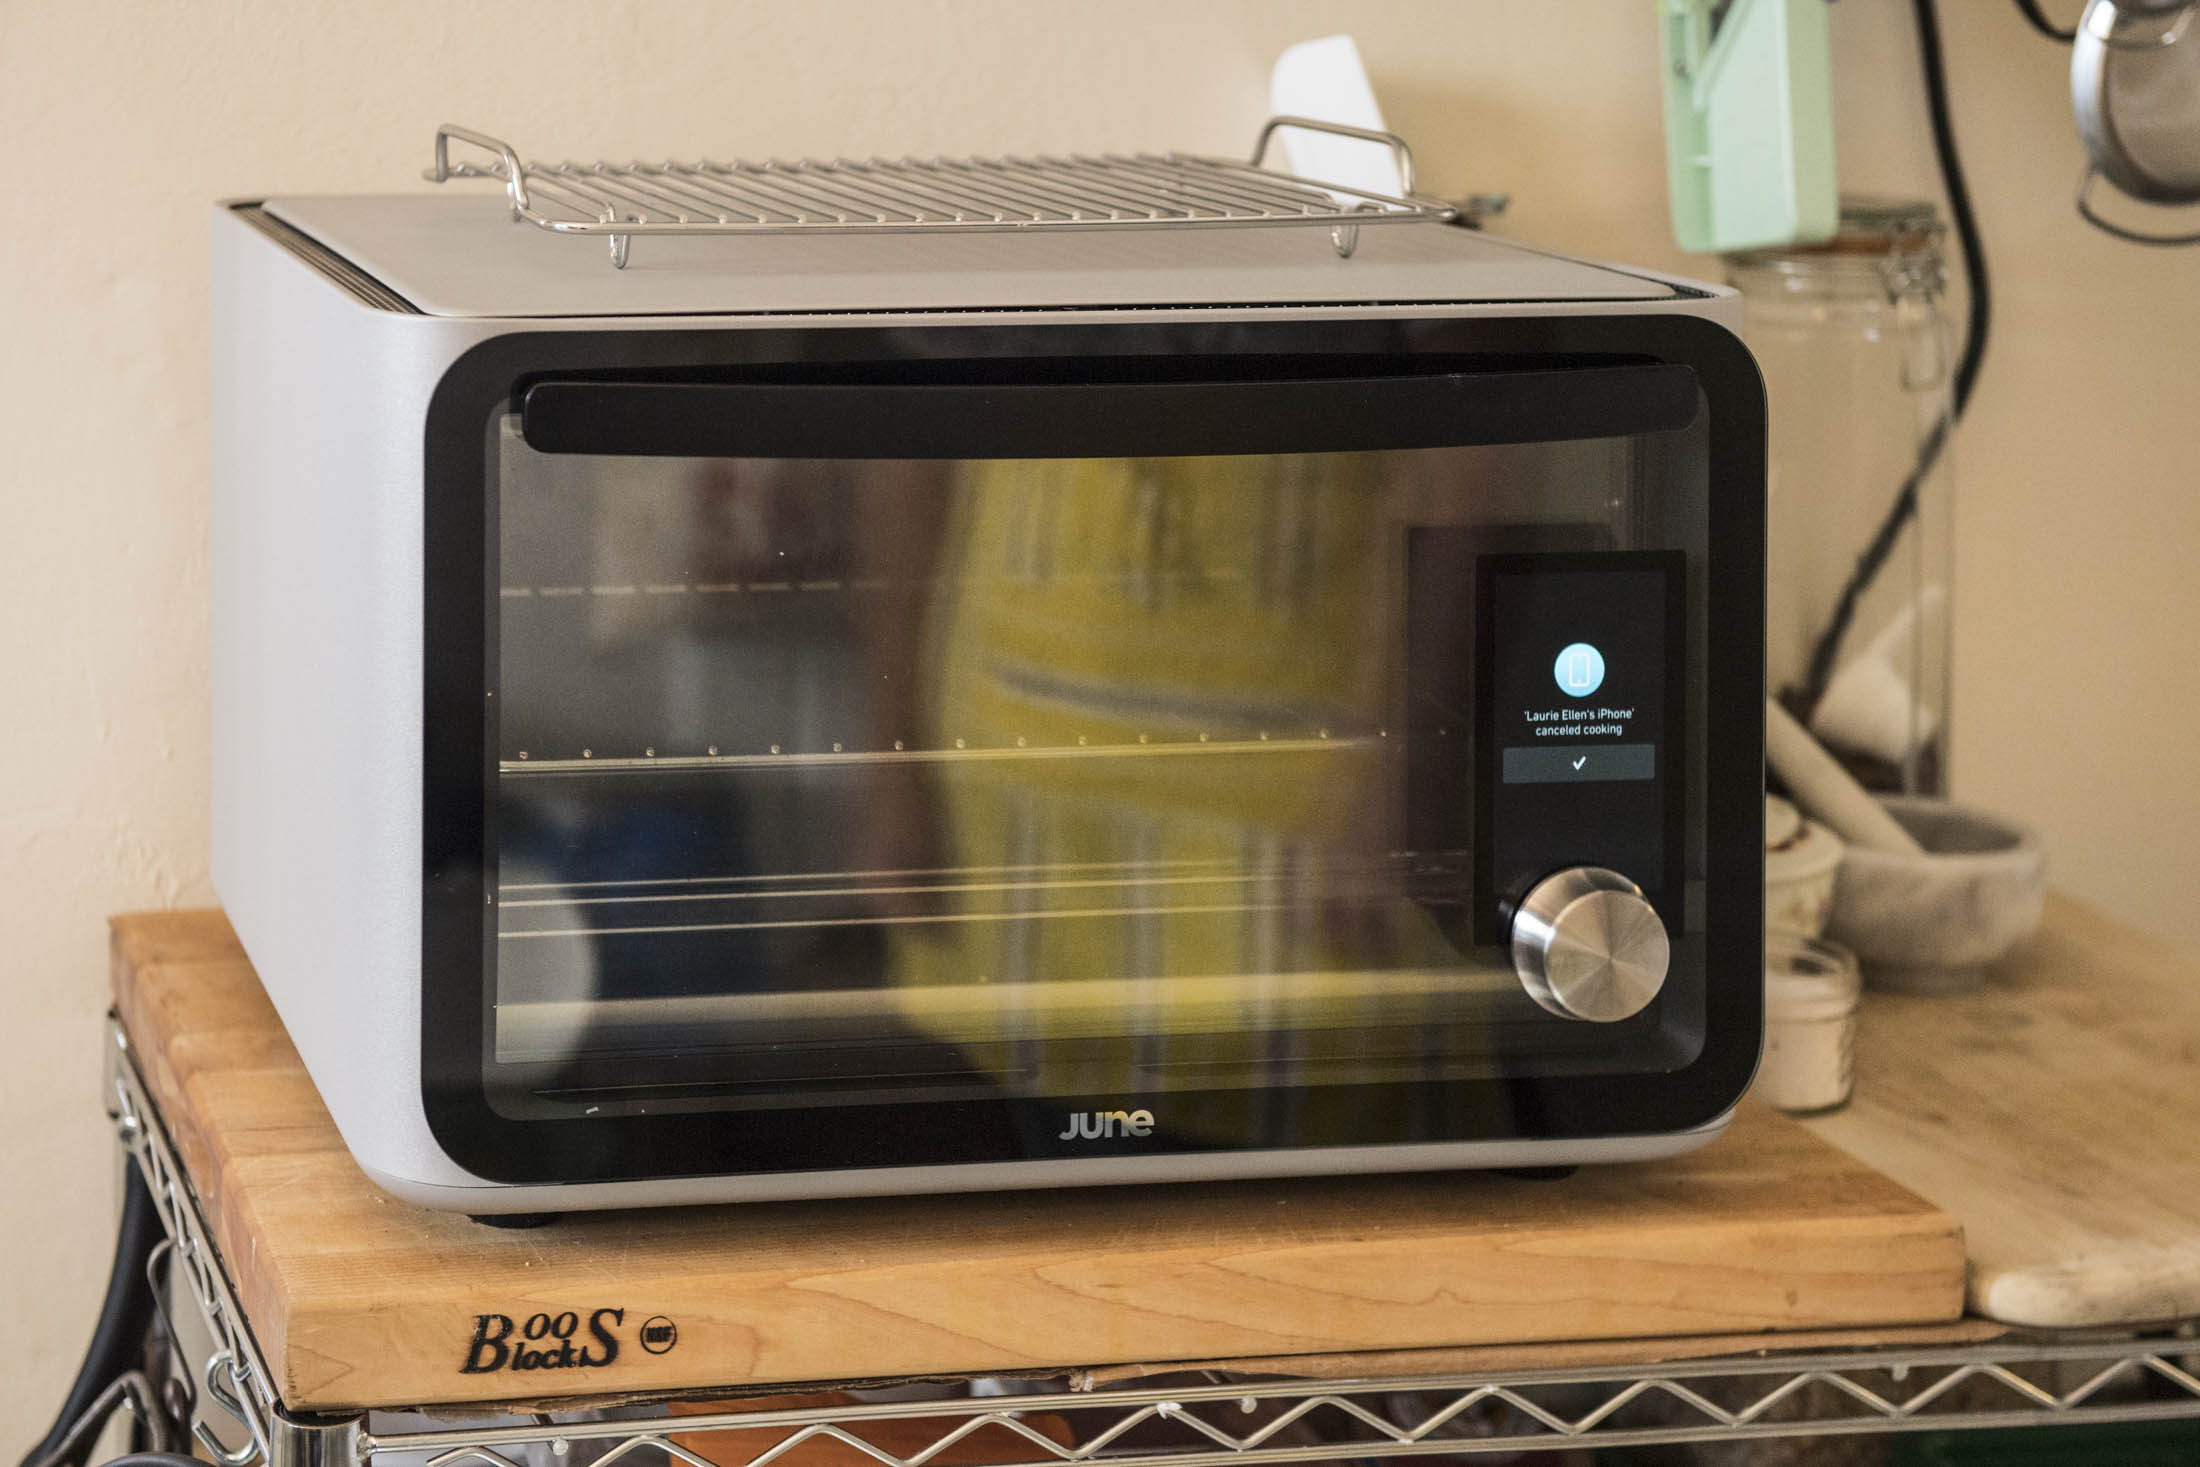 June Oven Review Can This Device Really Replace Home Cooks